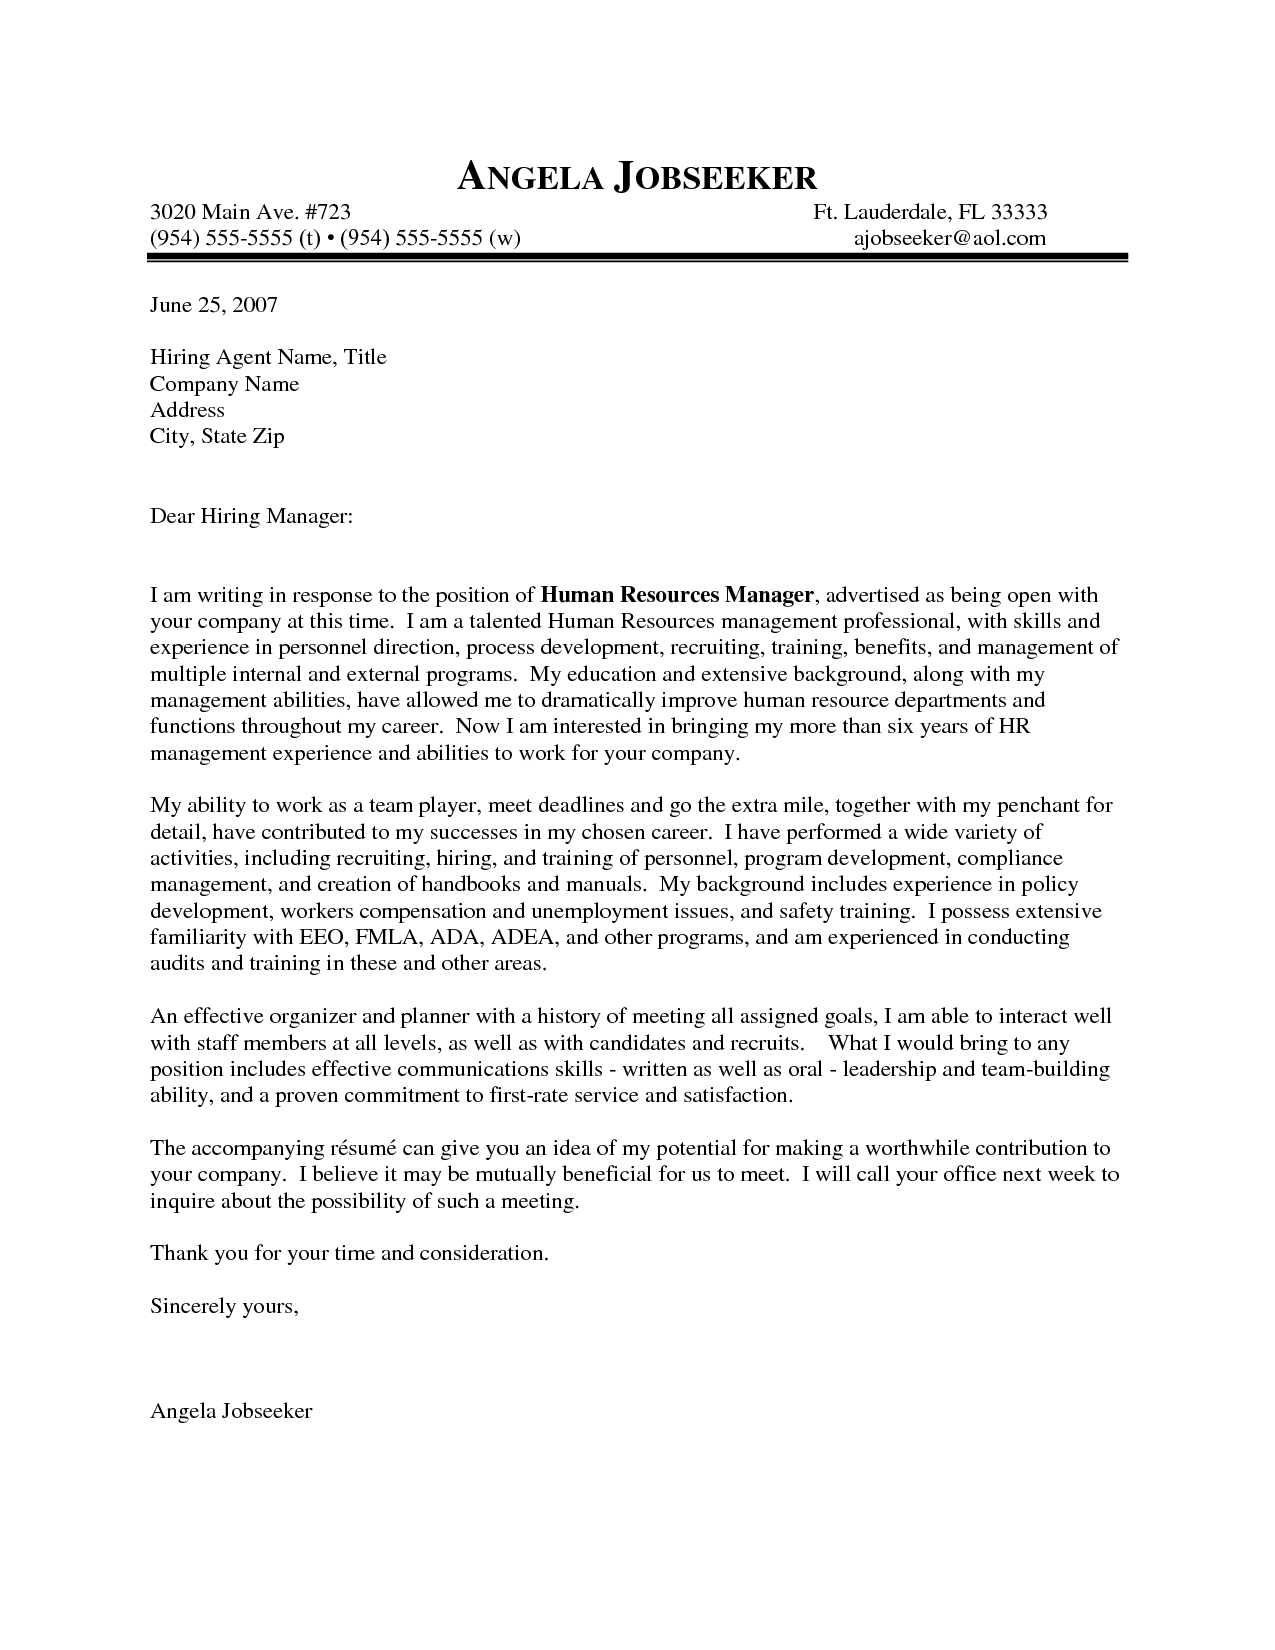 Example Of A Cover Letter For A Resume Beauteous Outstanding Cover Letter Examples  Hr Manager Cover Letter Review